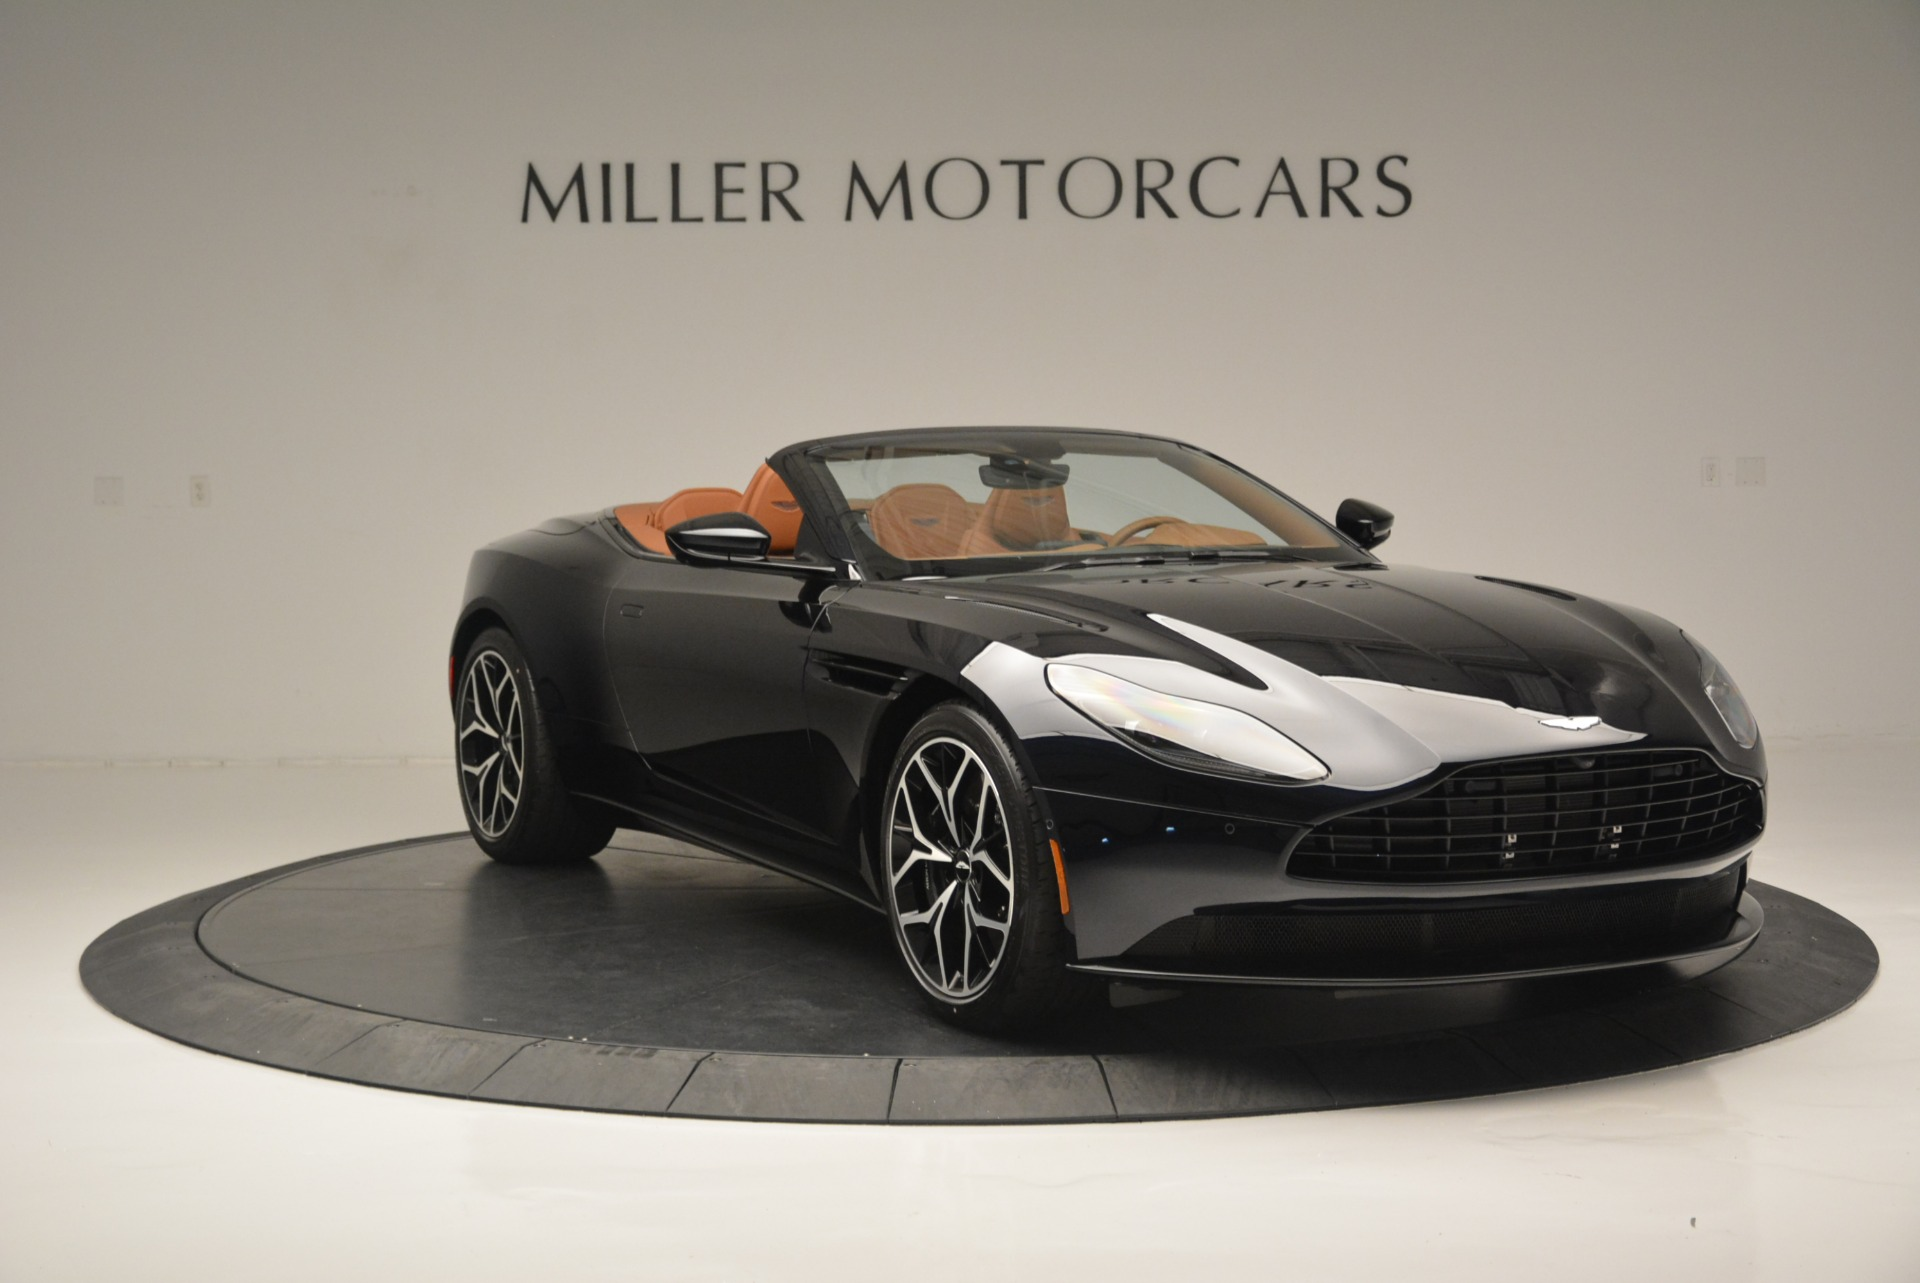 New 2019 Aston Martin DB11 Volante Volante For Sale In Westport, CT 2450_p11